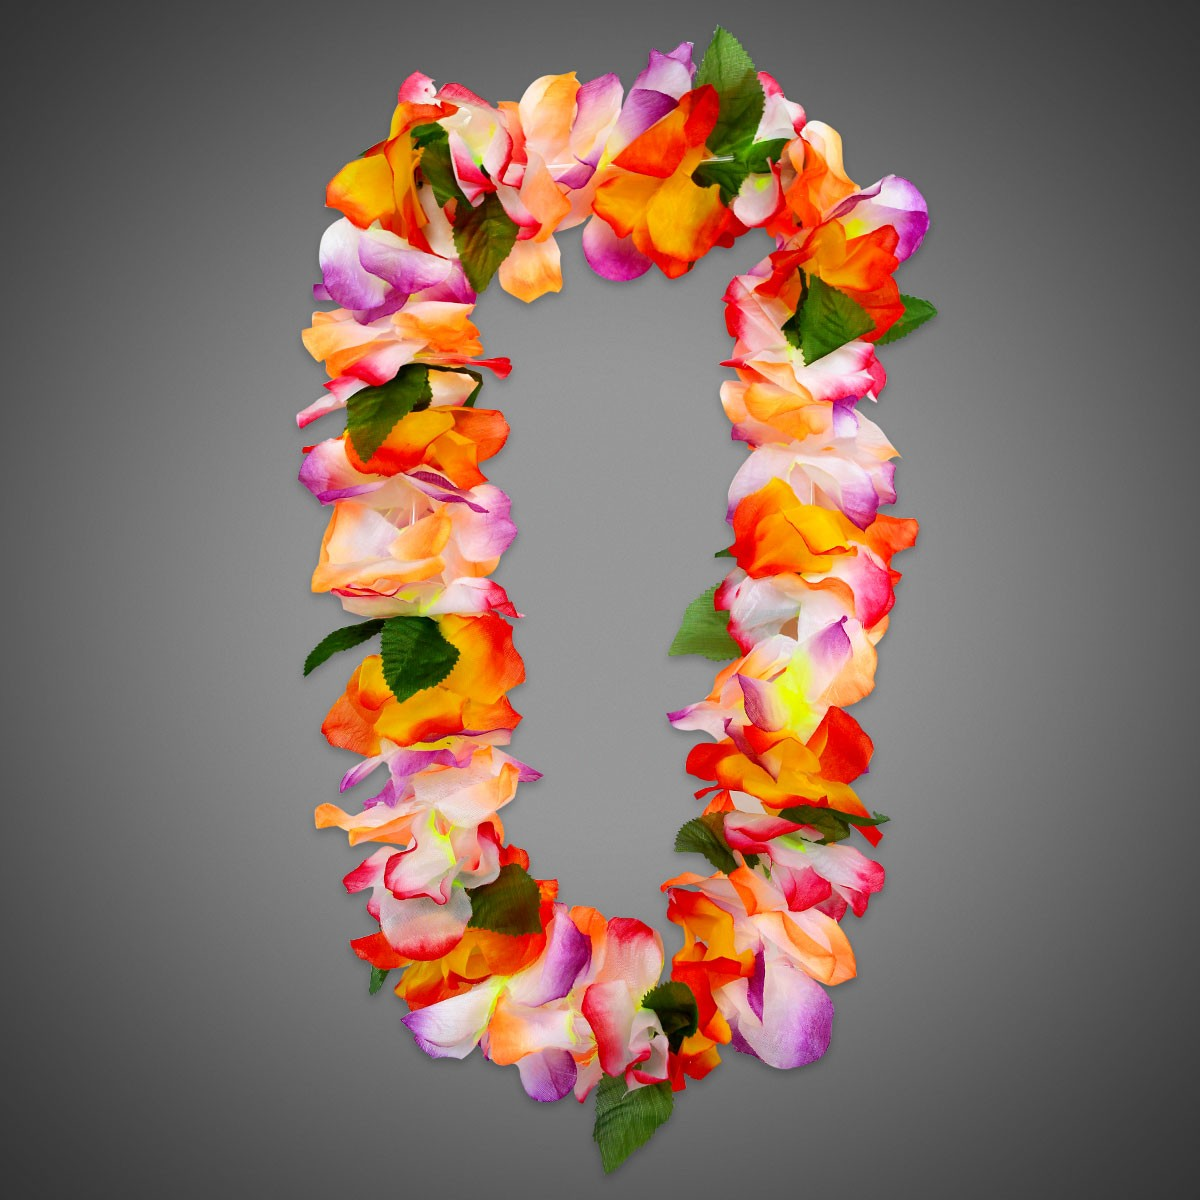 Jumbo Flower Leis 40 Inch Leis Party Beads Medallions Leis and Boas